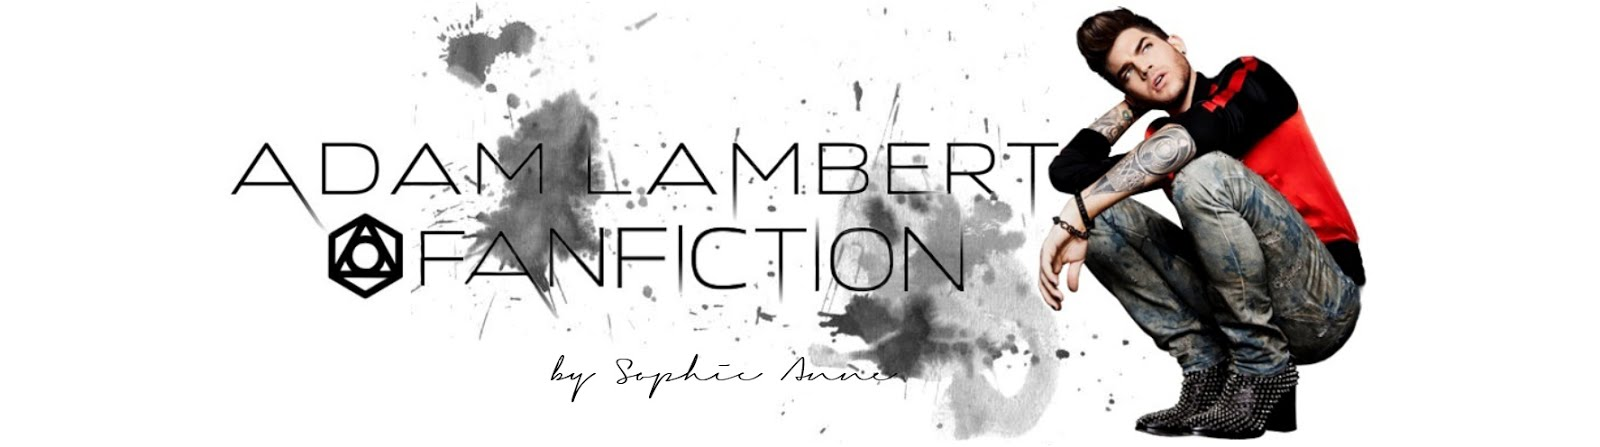 Adam Lambert Fanfiction